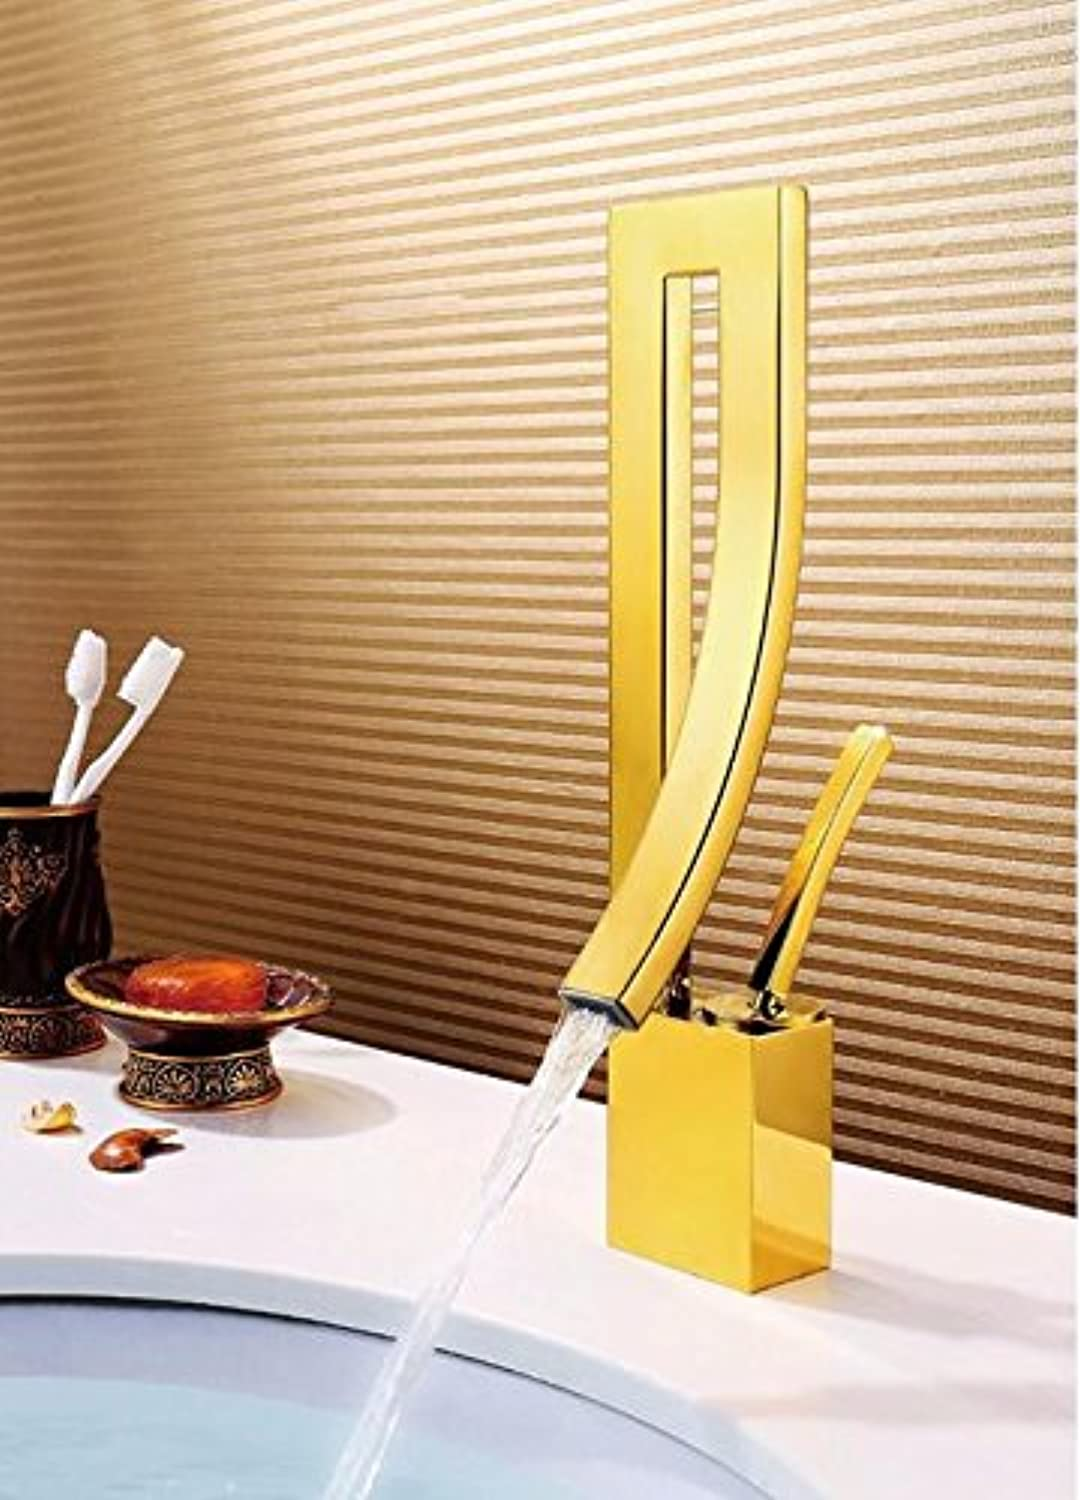 Mkkwp golden Bathroom Faucet Crane Chrome Finish Waterfall Faucet Bathroom Tap Bathroom Basin Mixer Tap with Hot and Cold Water